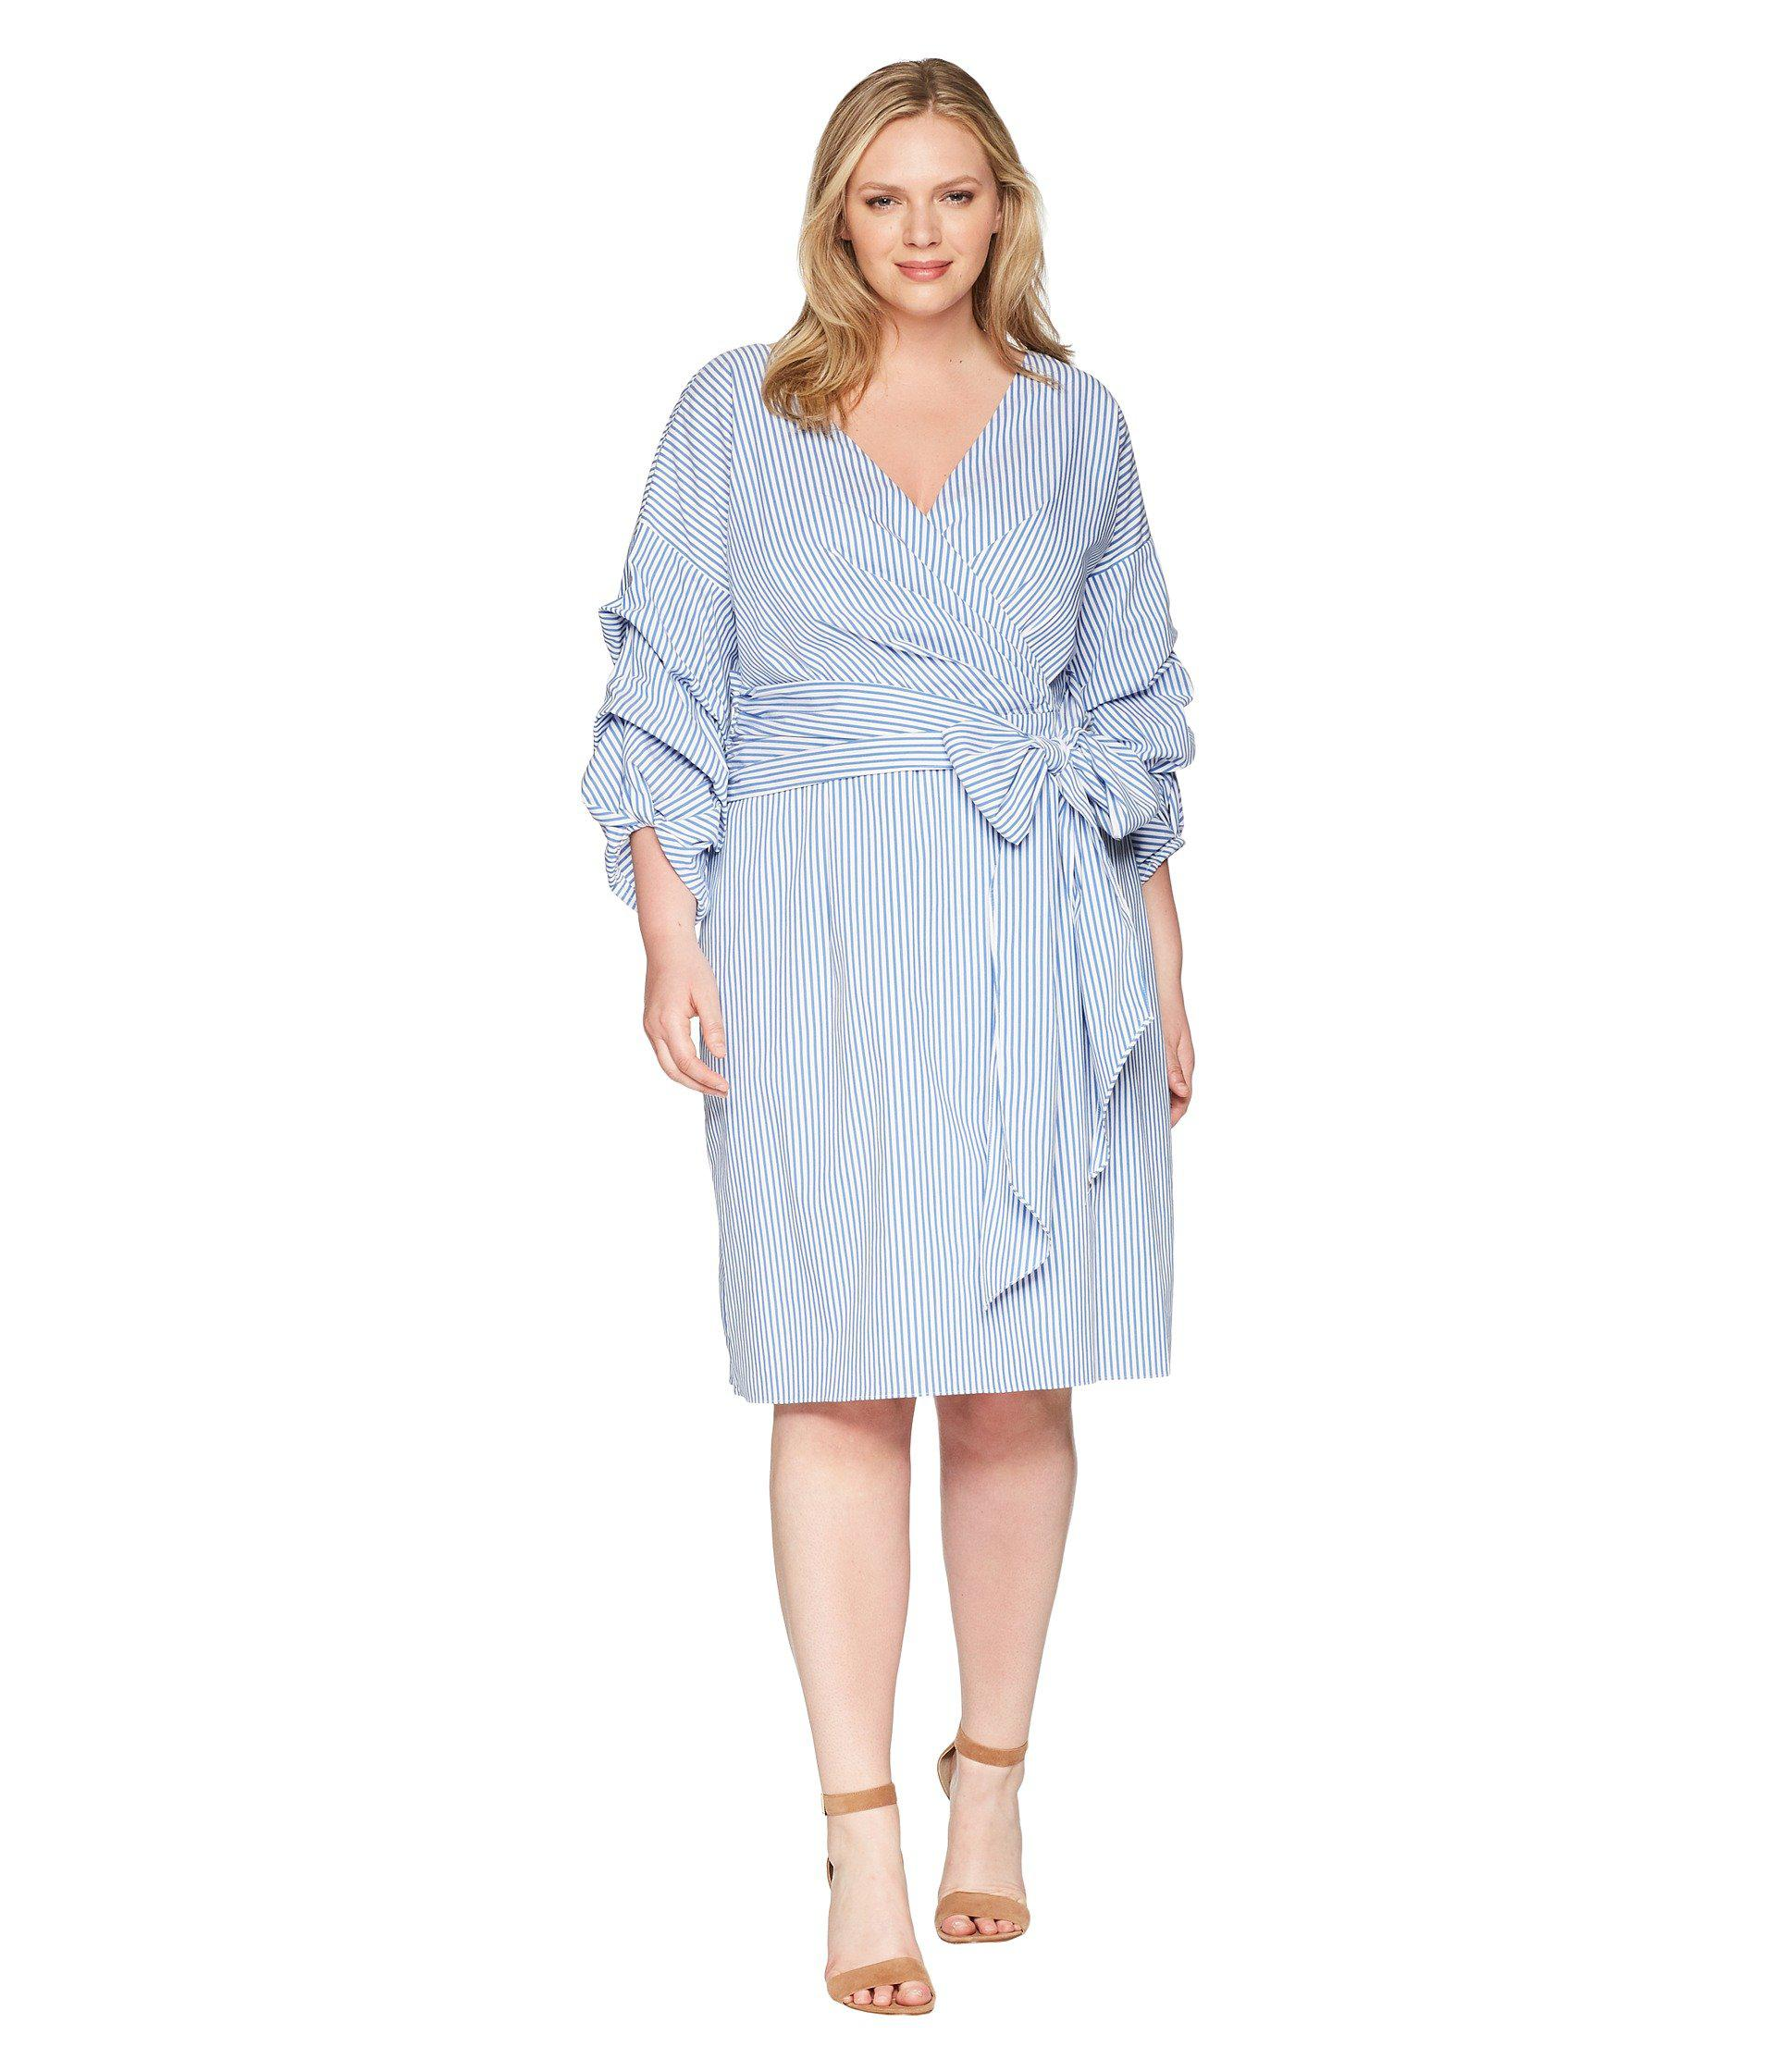 c41607ca32c Lyst - Adrianna Papell Plus Size Short Wrap Dress Long Sleeves in ...